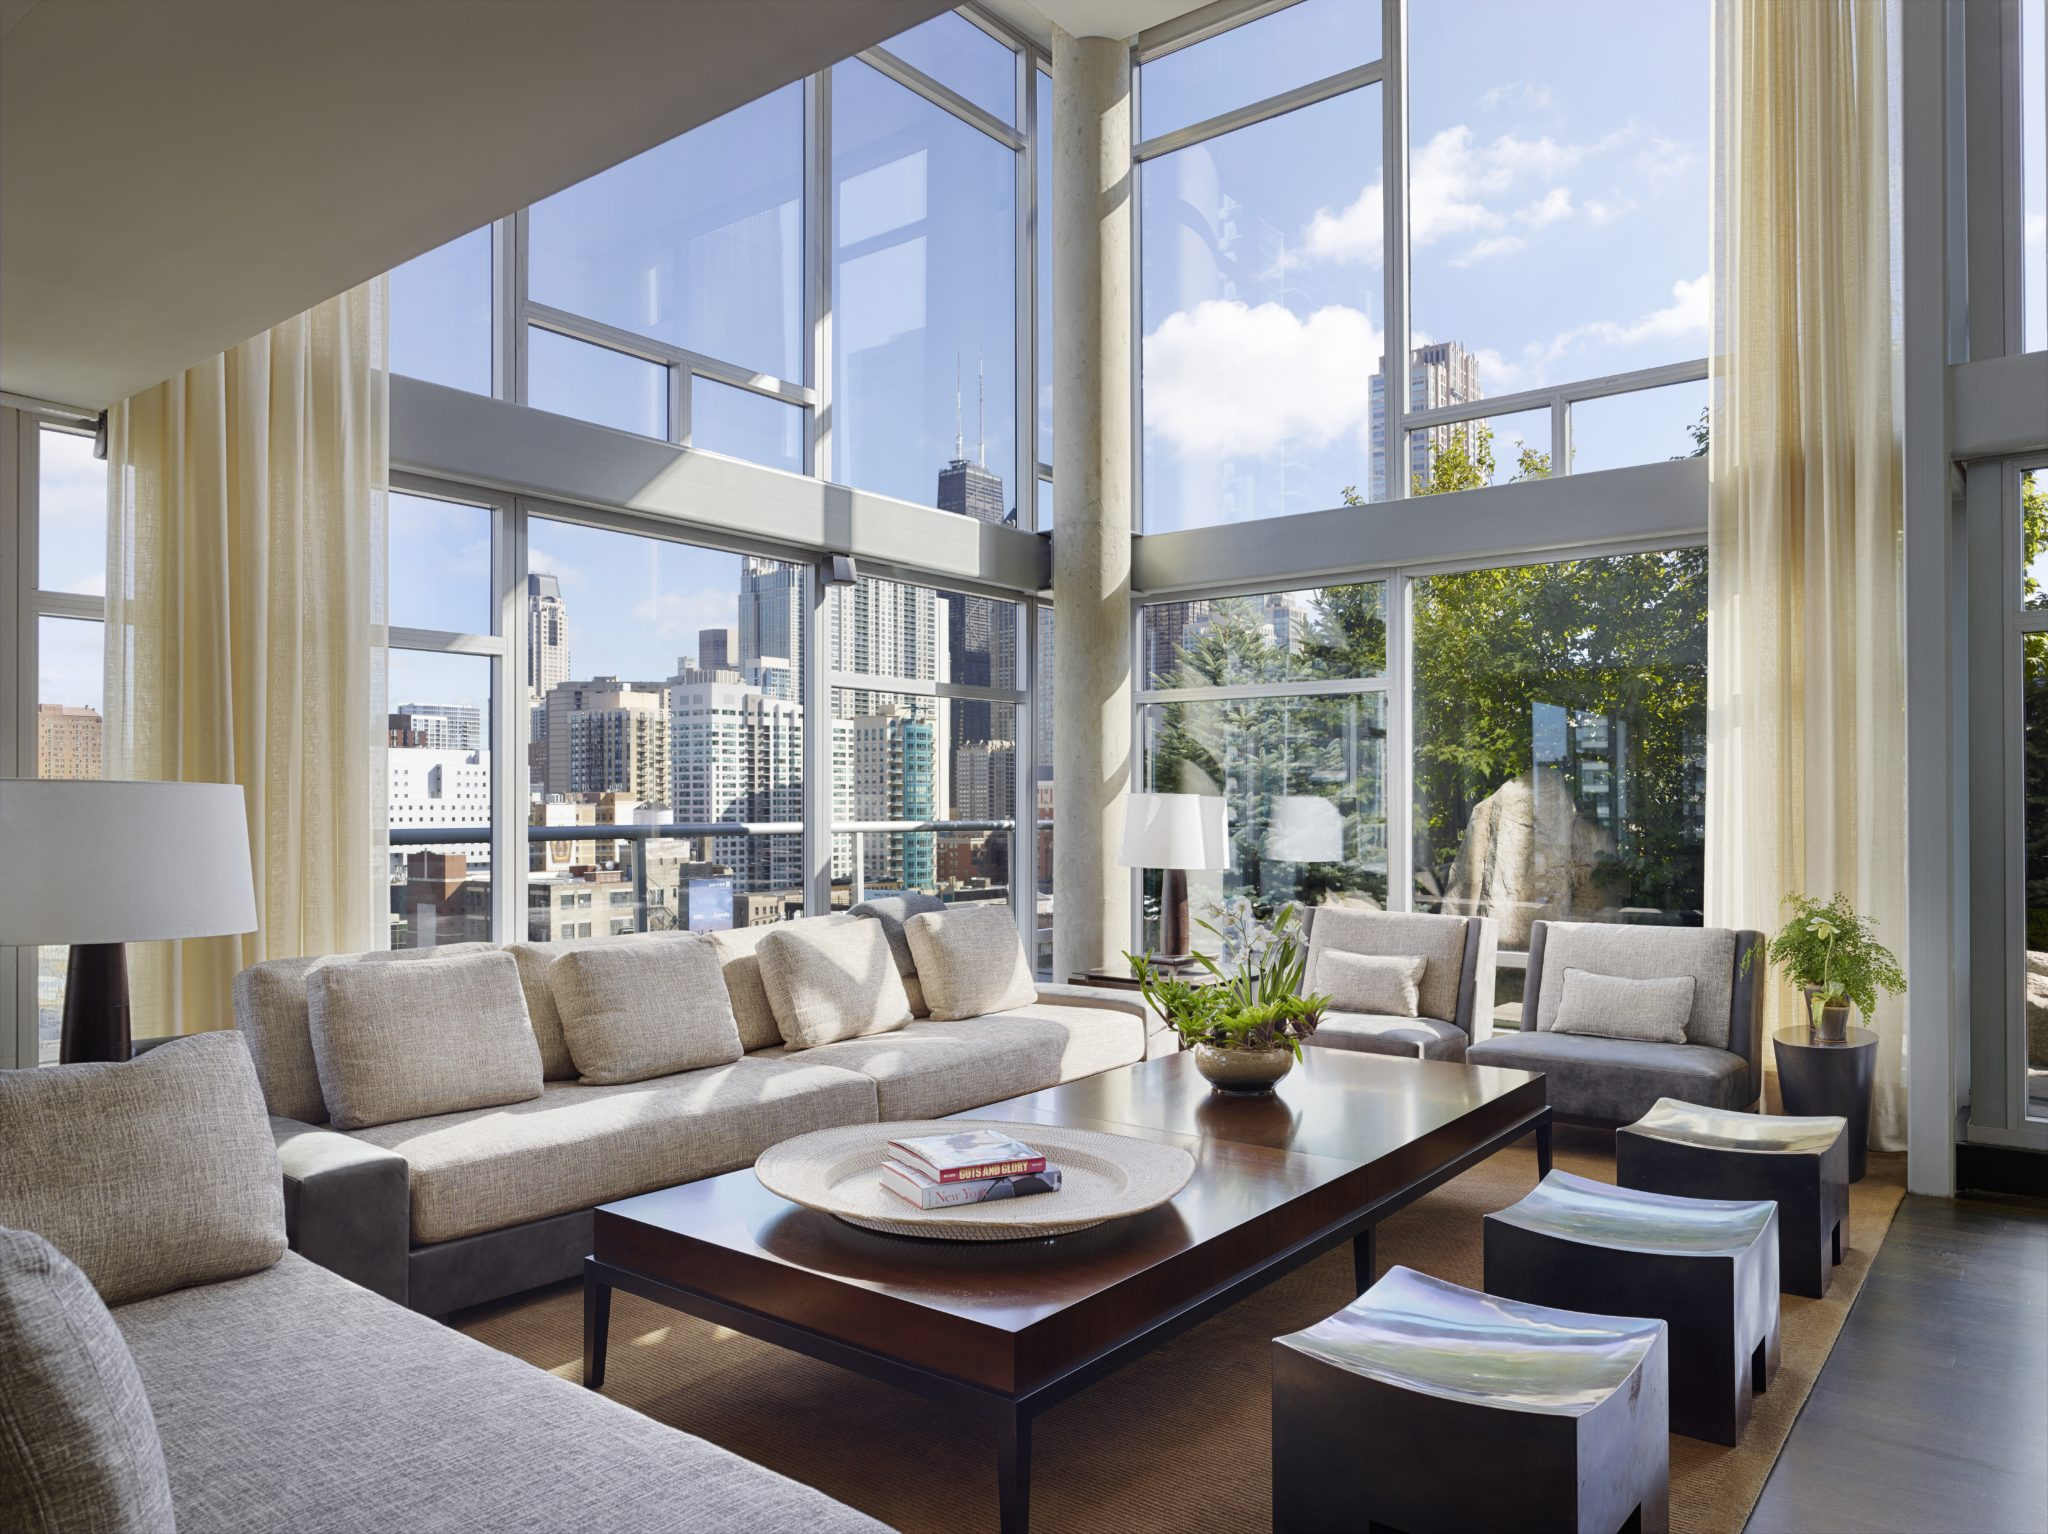 Penthouse apartment with floor-to-ceiling windows and custom sheers by Alan Design Studio